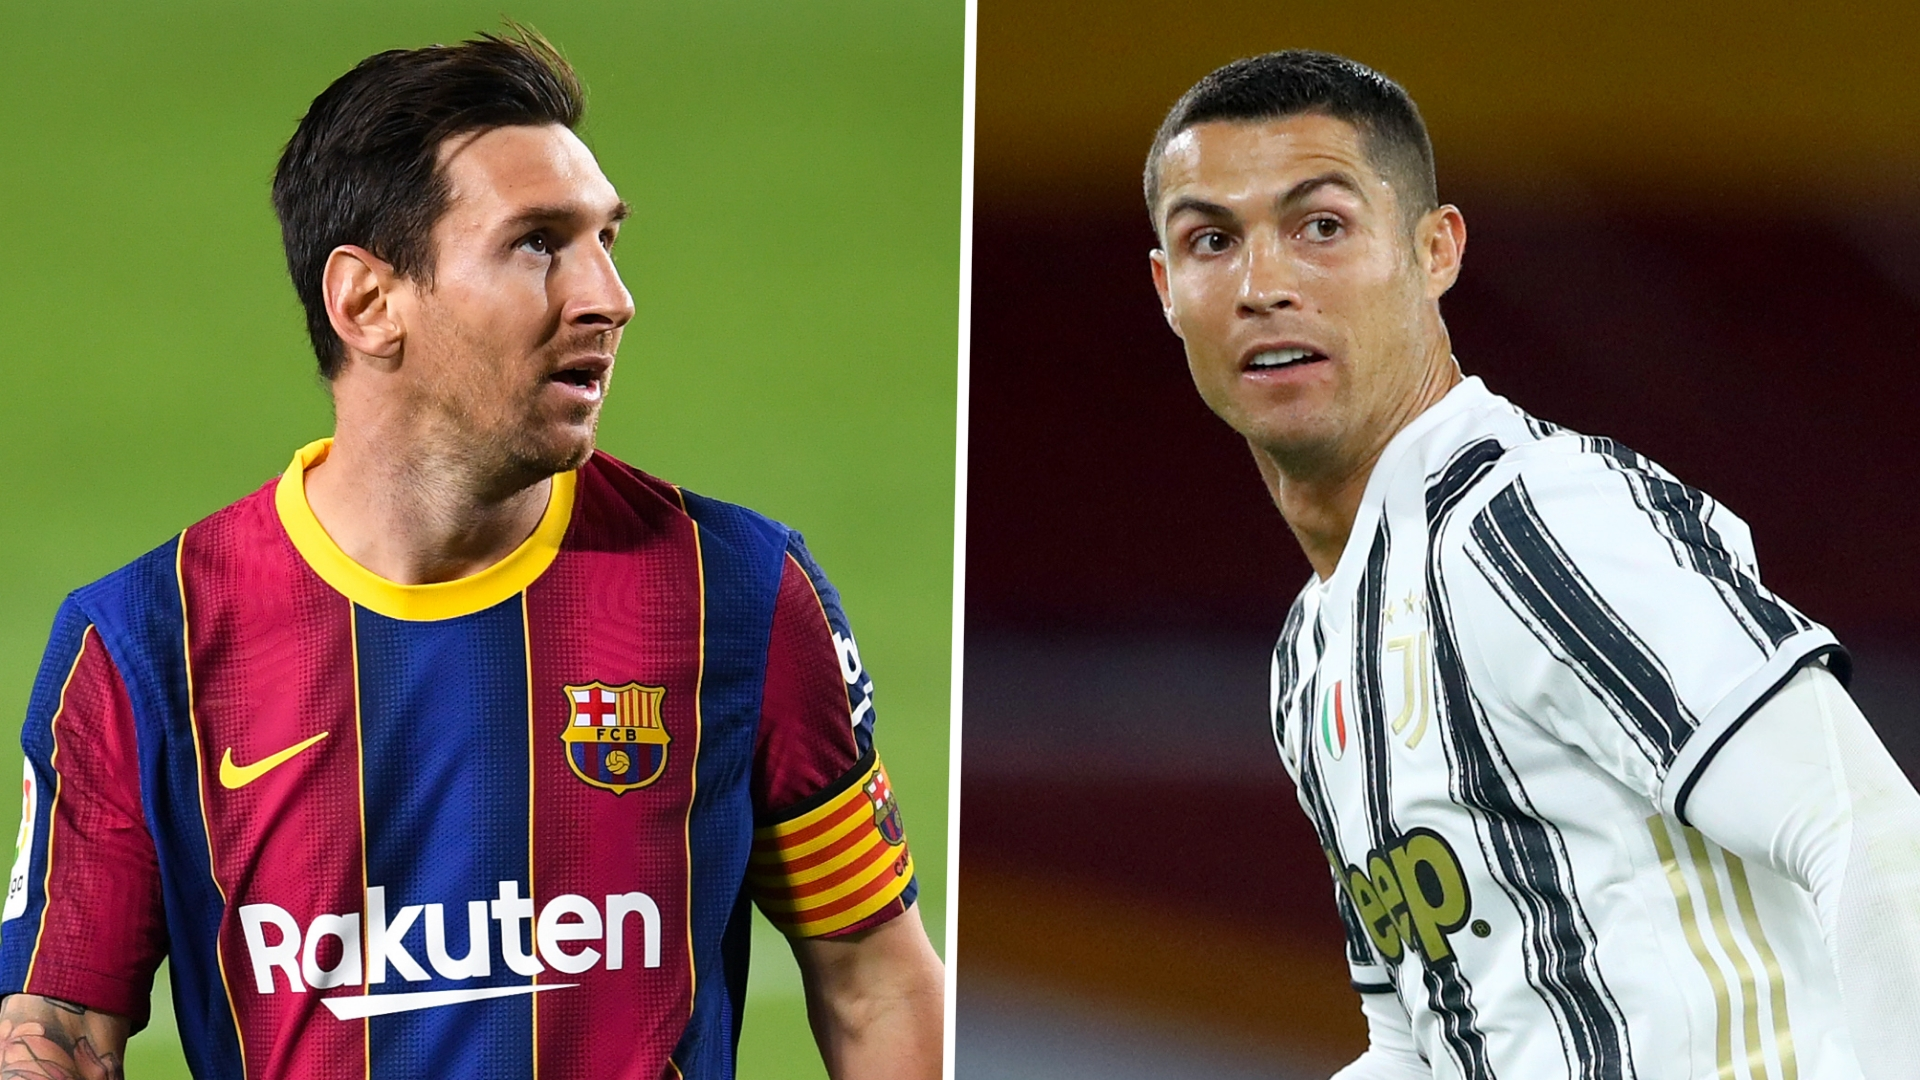 Why do fans chant 'Messi, Messi' at Cristiano Ronaldo?